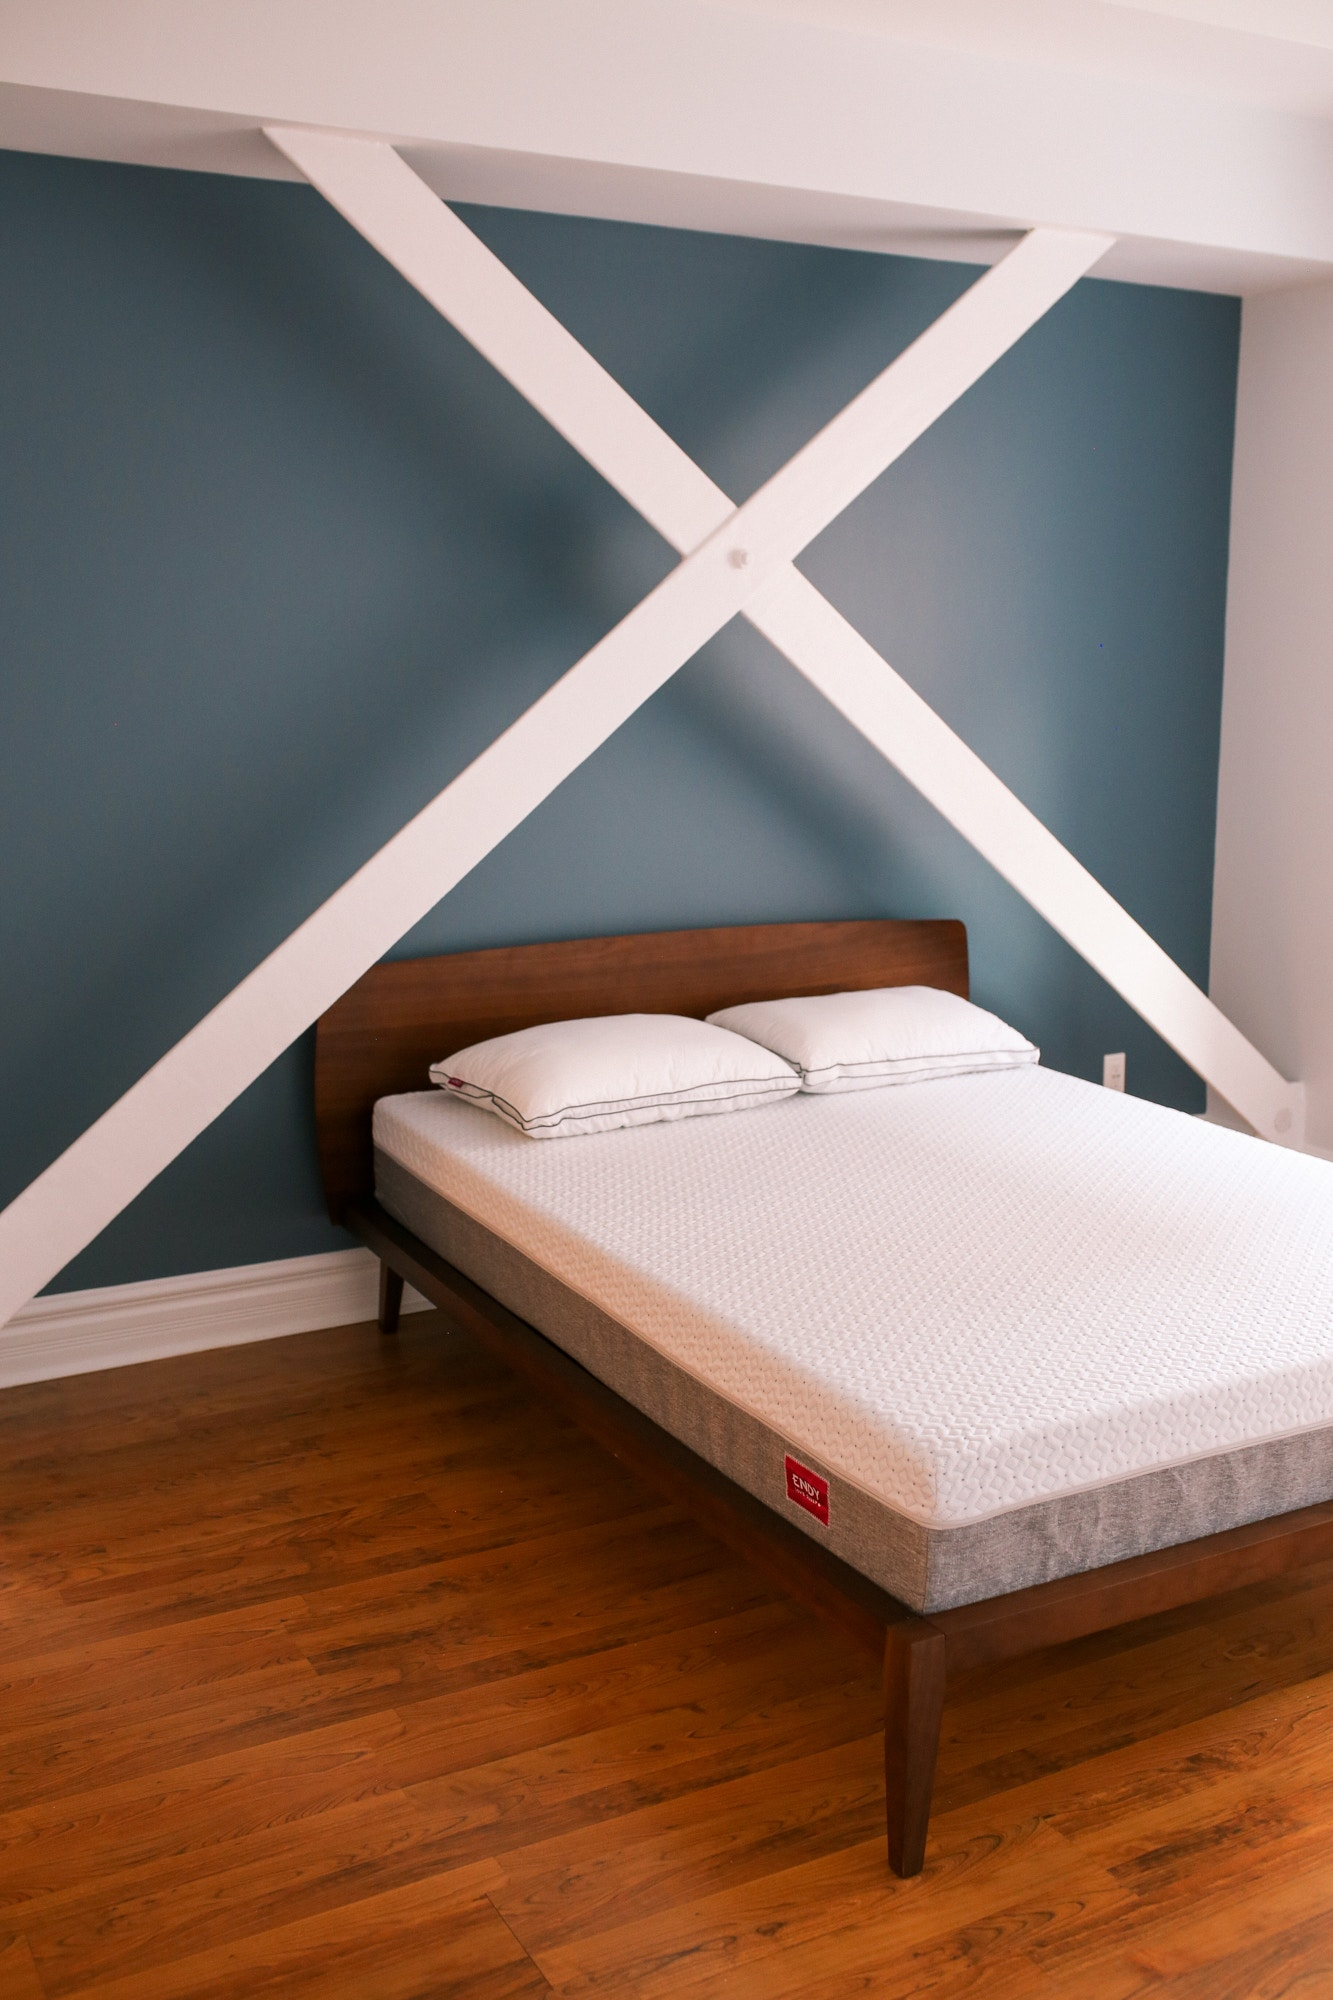 Queen Endy Mattress - review on whether the bed is worth it, comfortable and easy to set up!